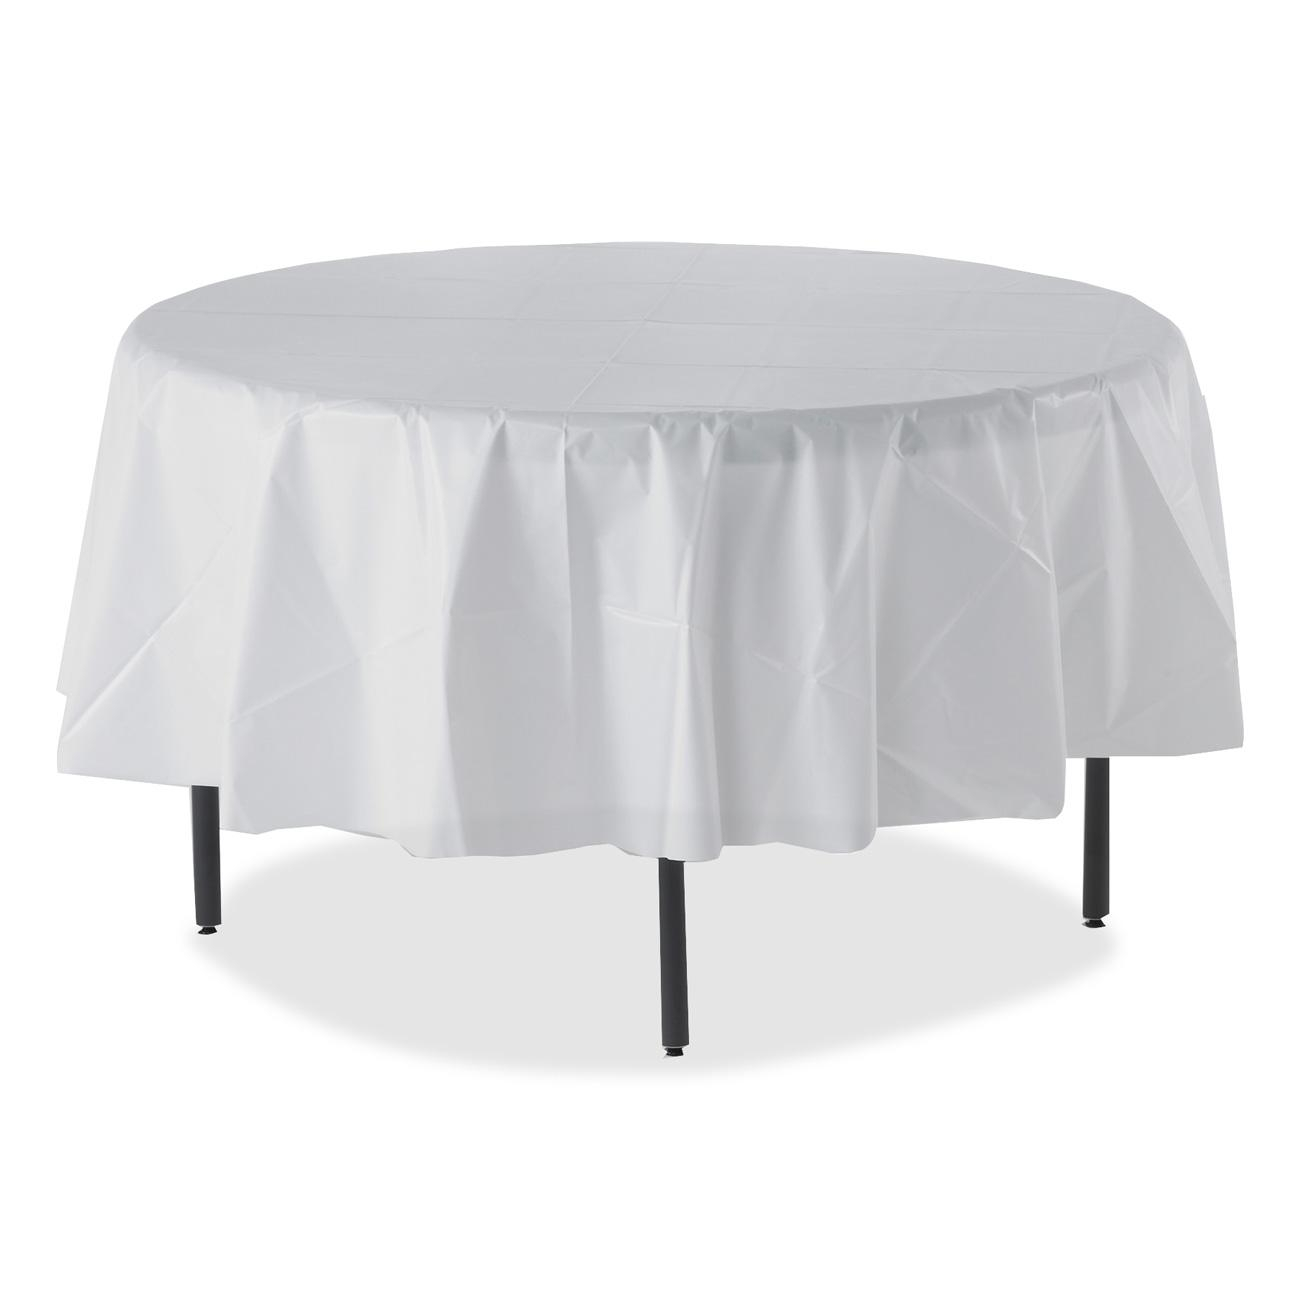 Picture of: White patio table cover